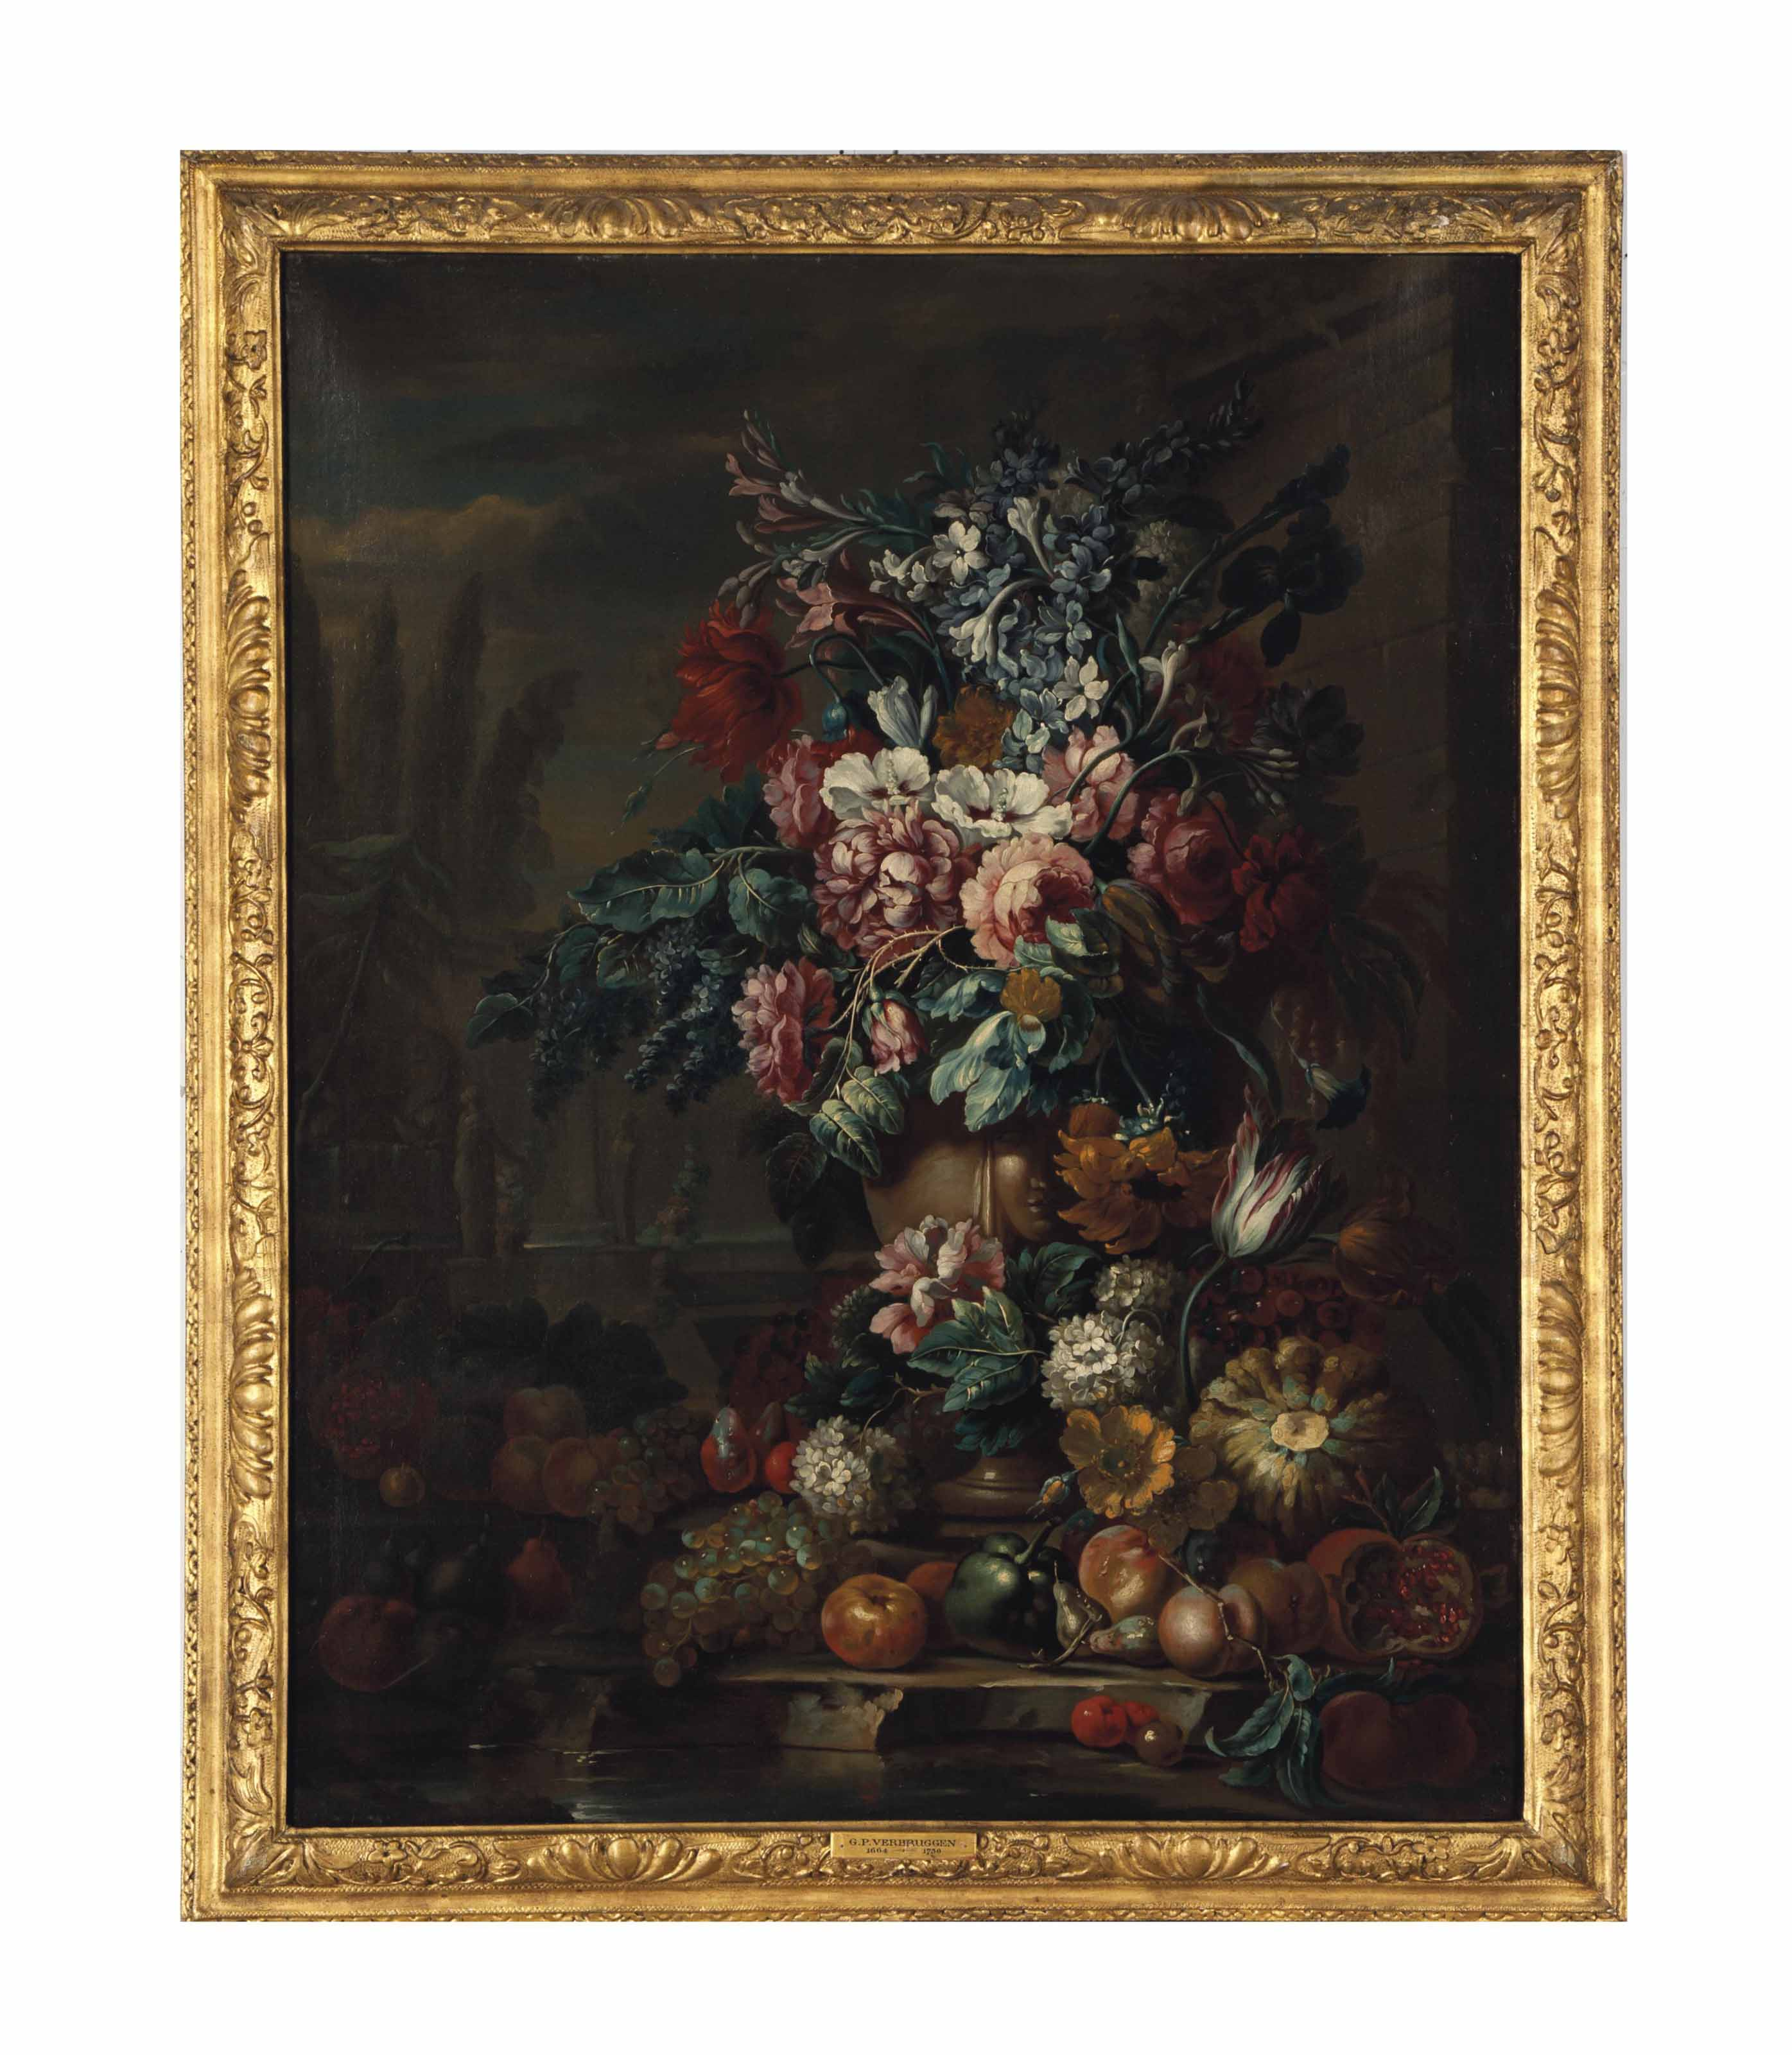 Still life of flowers in a vase on a stone ledge with various fruits